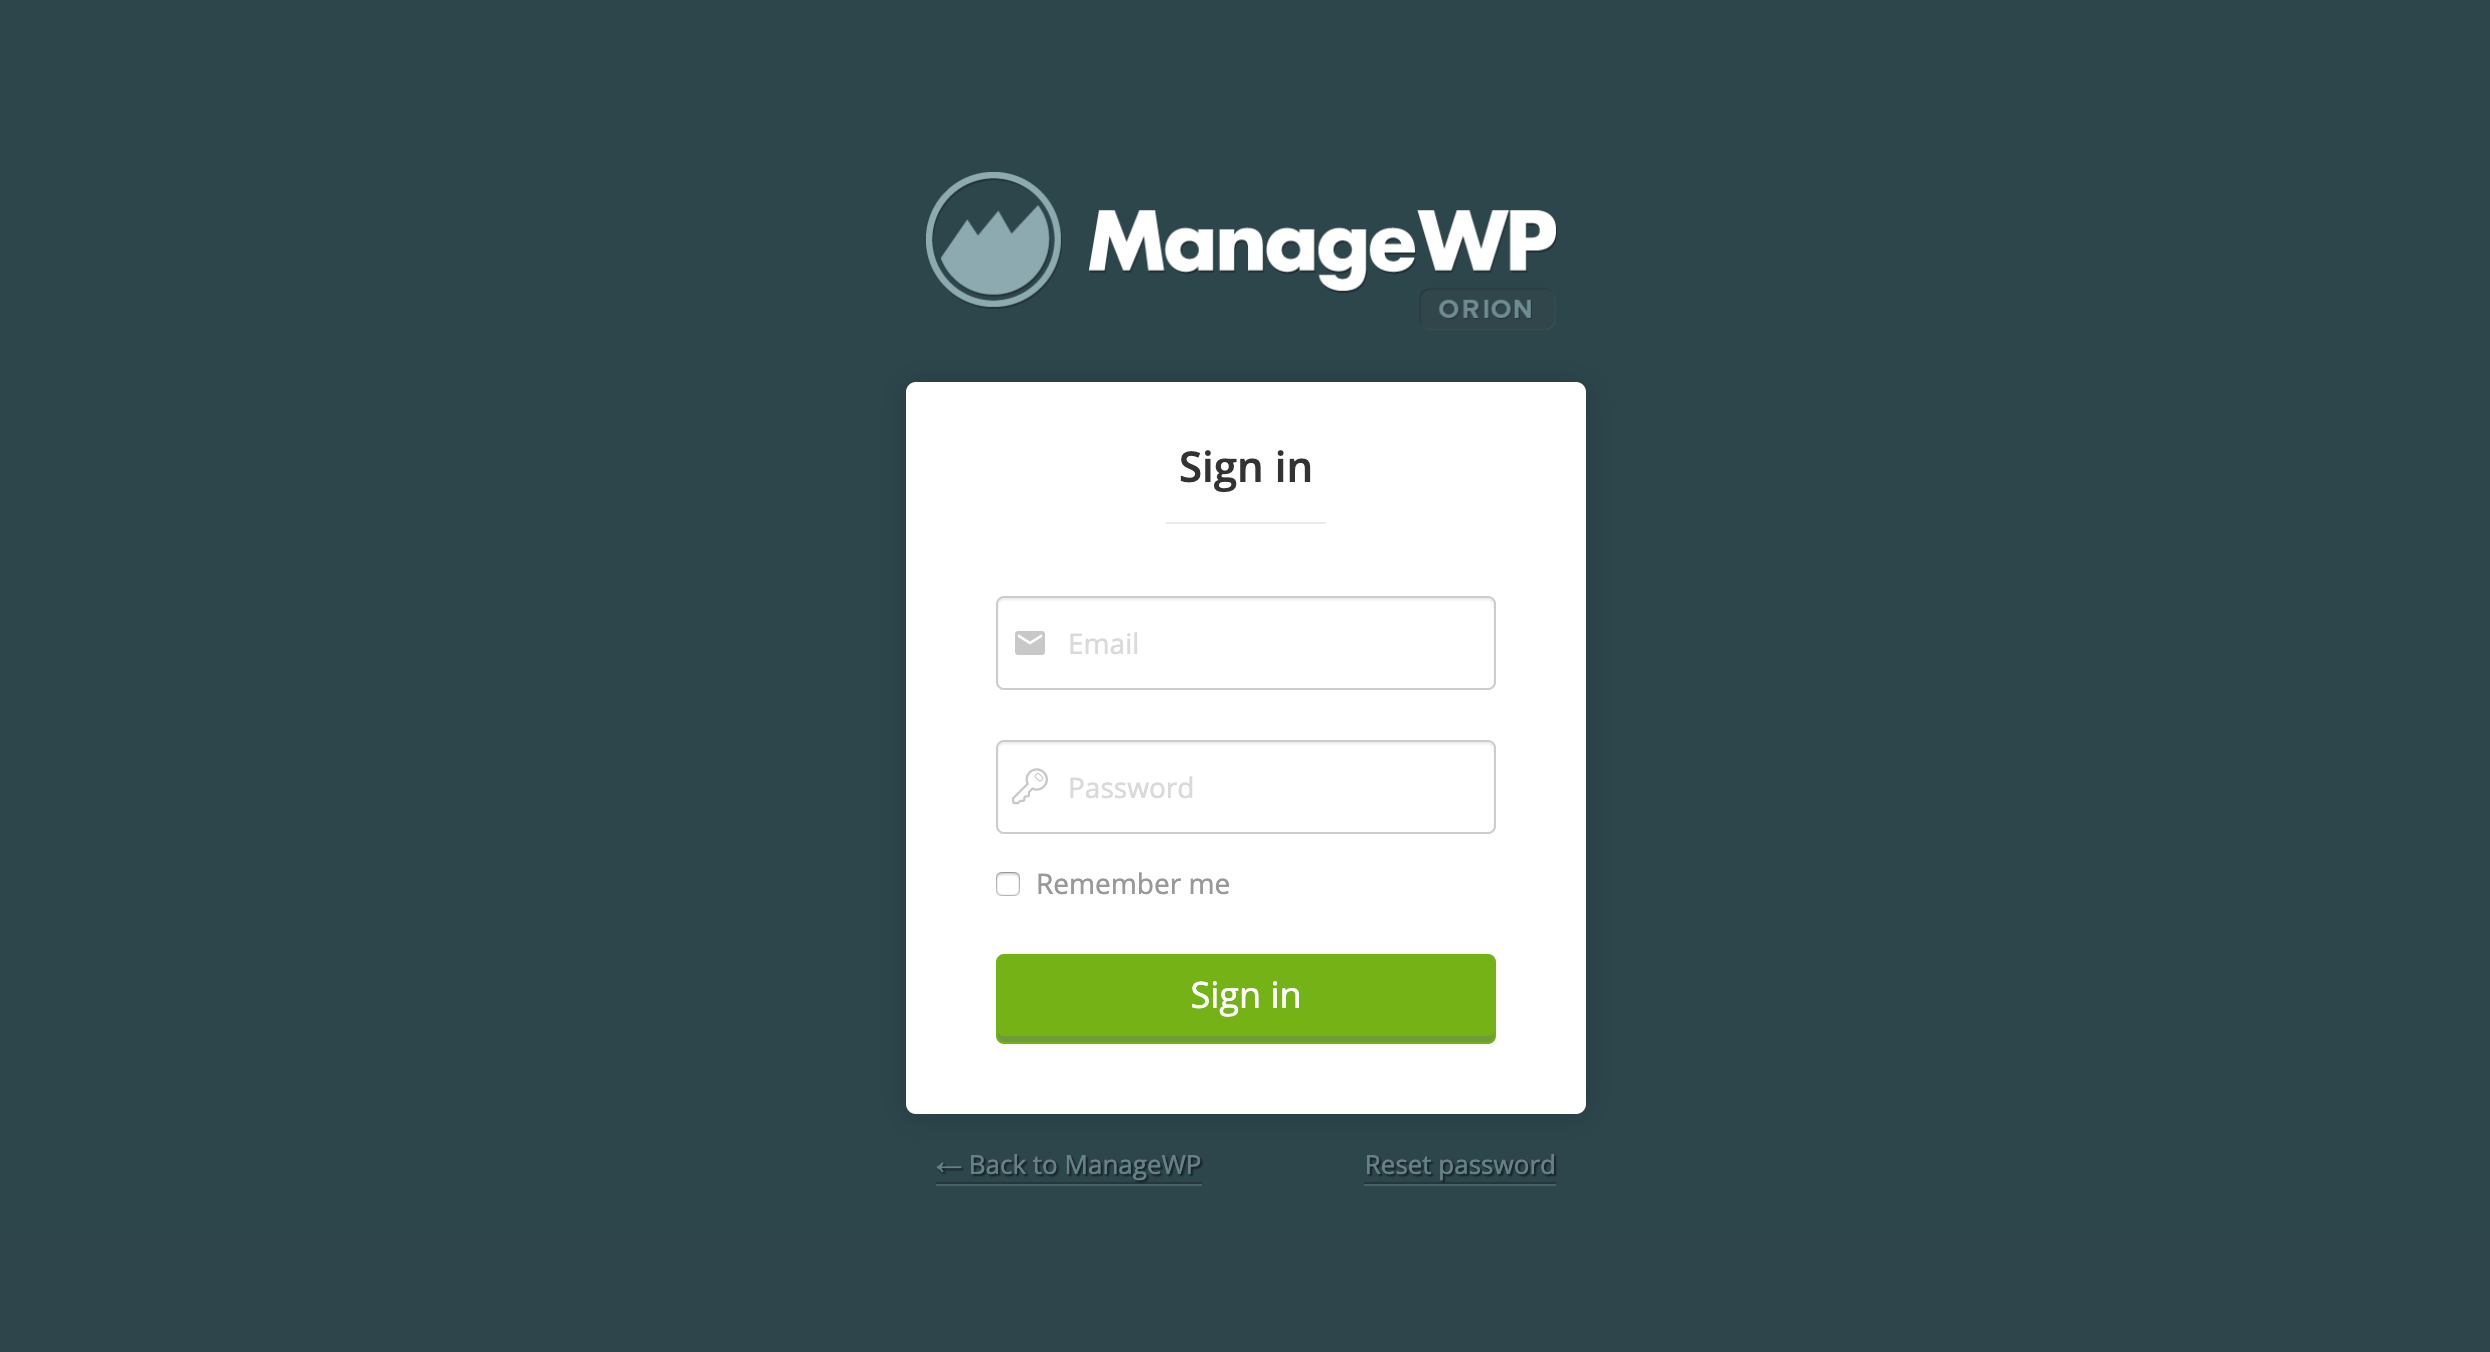 Signing in to ManageWP.